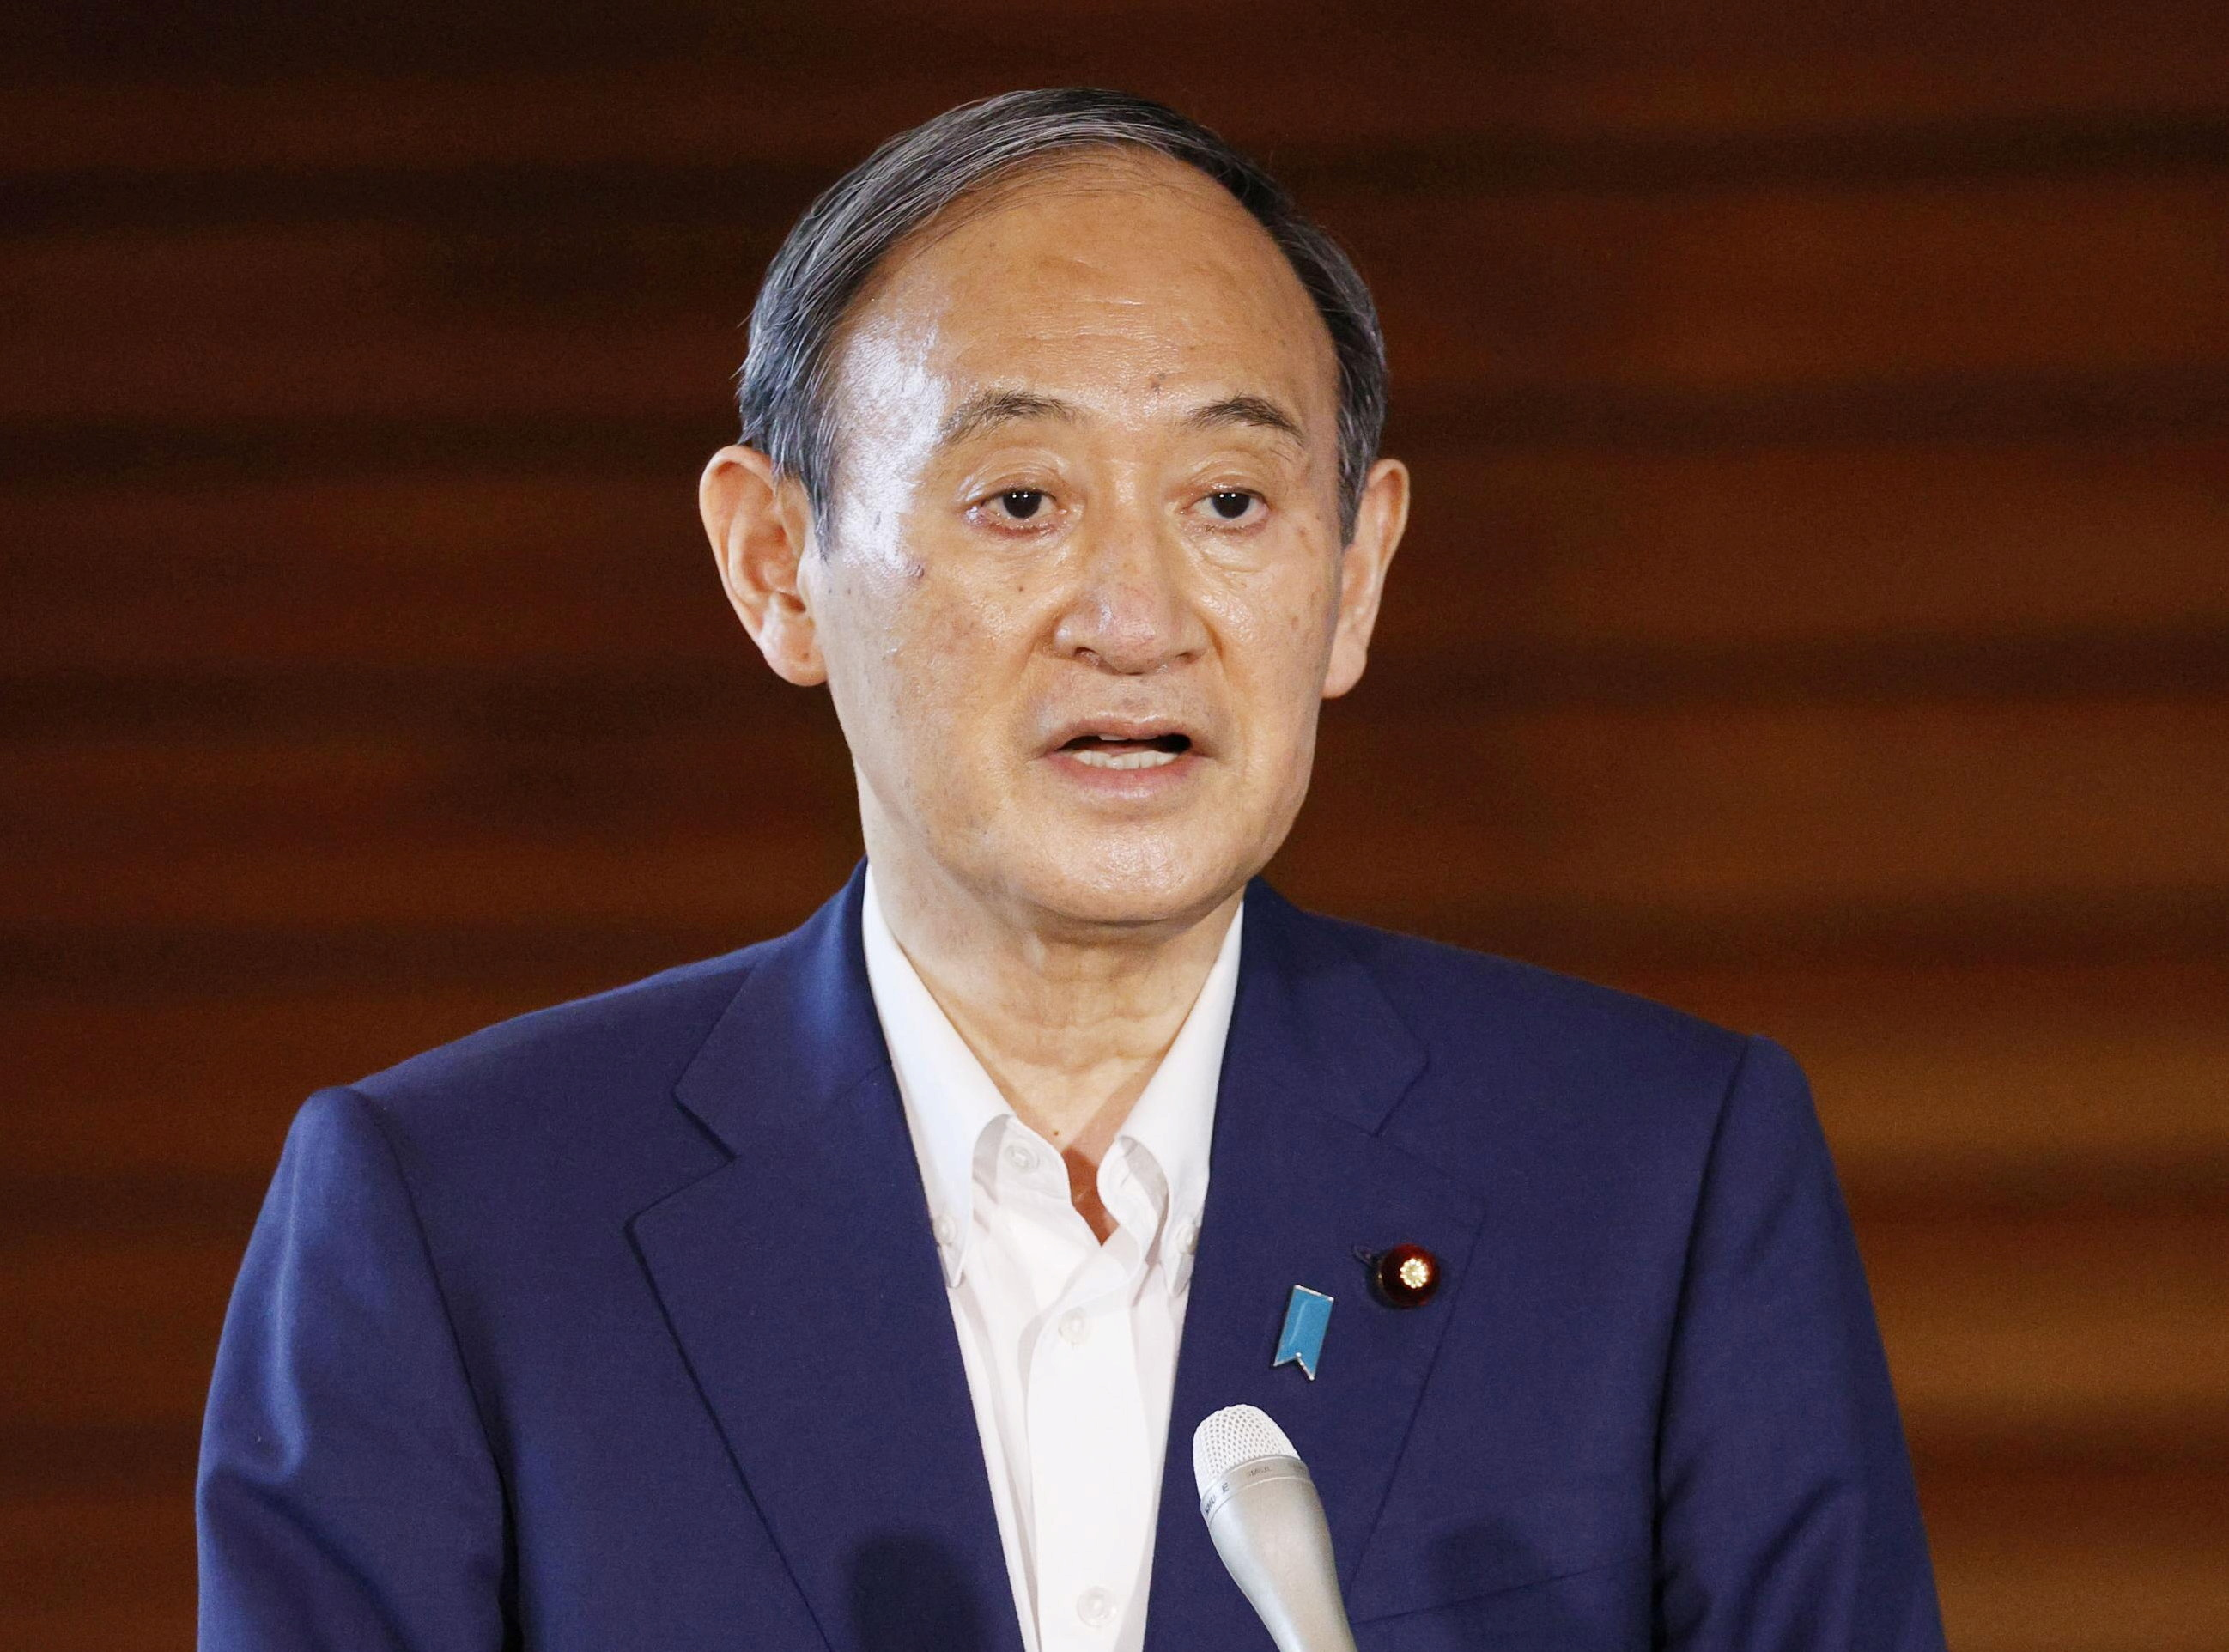 Japan's Prime Minister Yoshihide Suga speaks to media after he annouced to pull out of a party leadership race at his official residence in Tokyo, Japan, September 3, 2021. Kyodo/via REUTERS